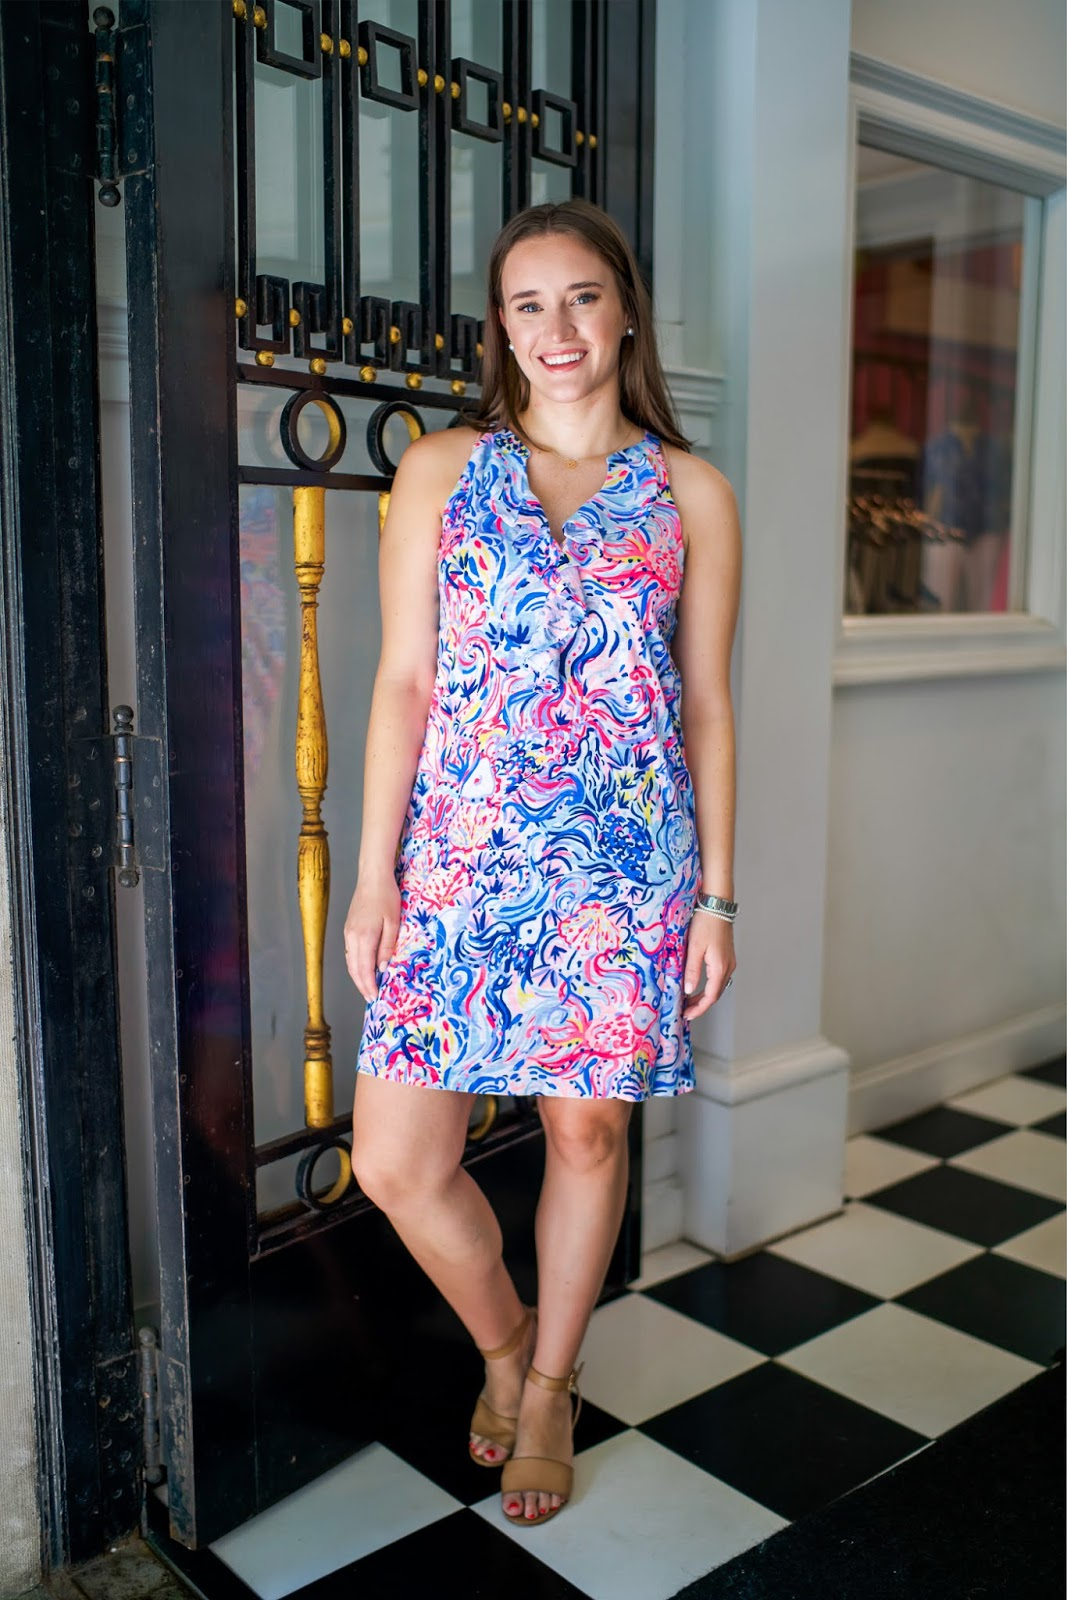 c8e04c236200 Fiesta Stretch Dress - TTS - wearing size 6 Normally  189    On sale for